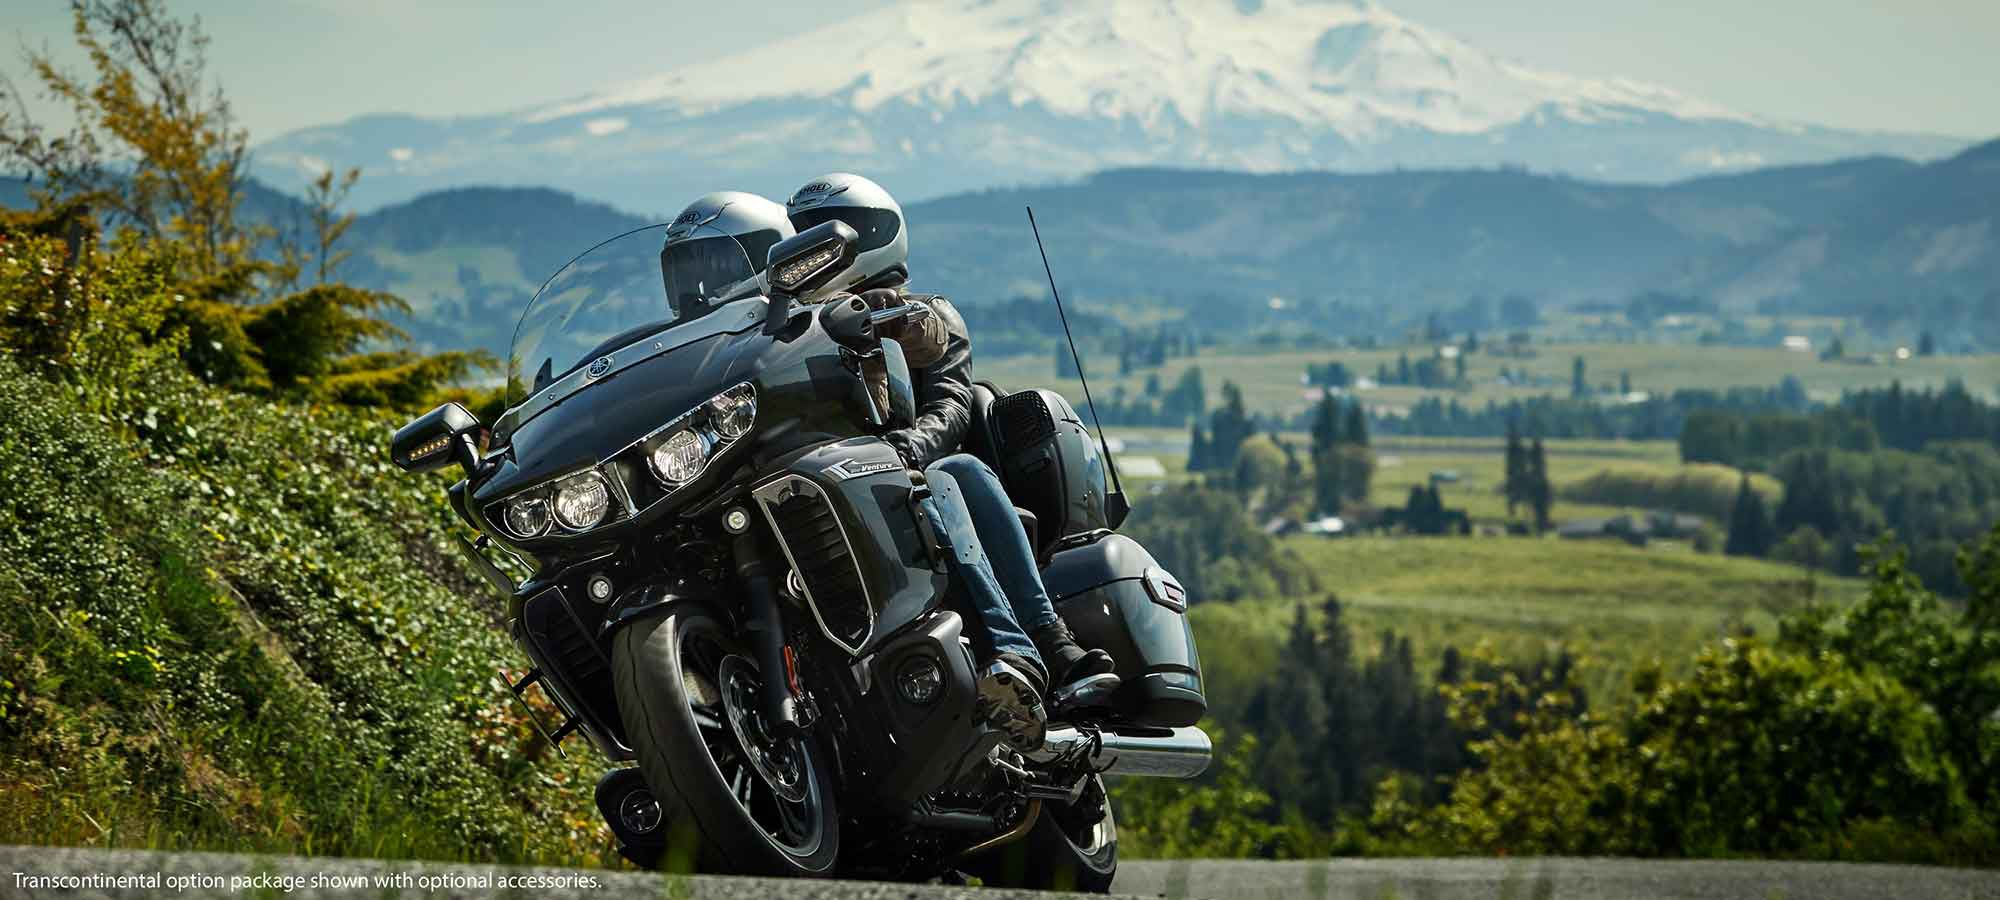 What's The Best Motorcycle For Traveling? | Motorcyclist